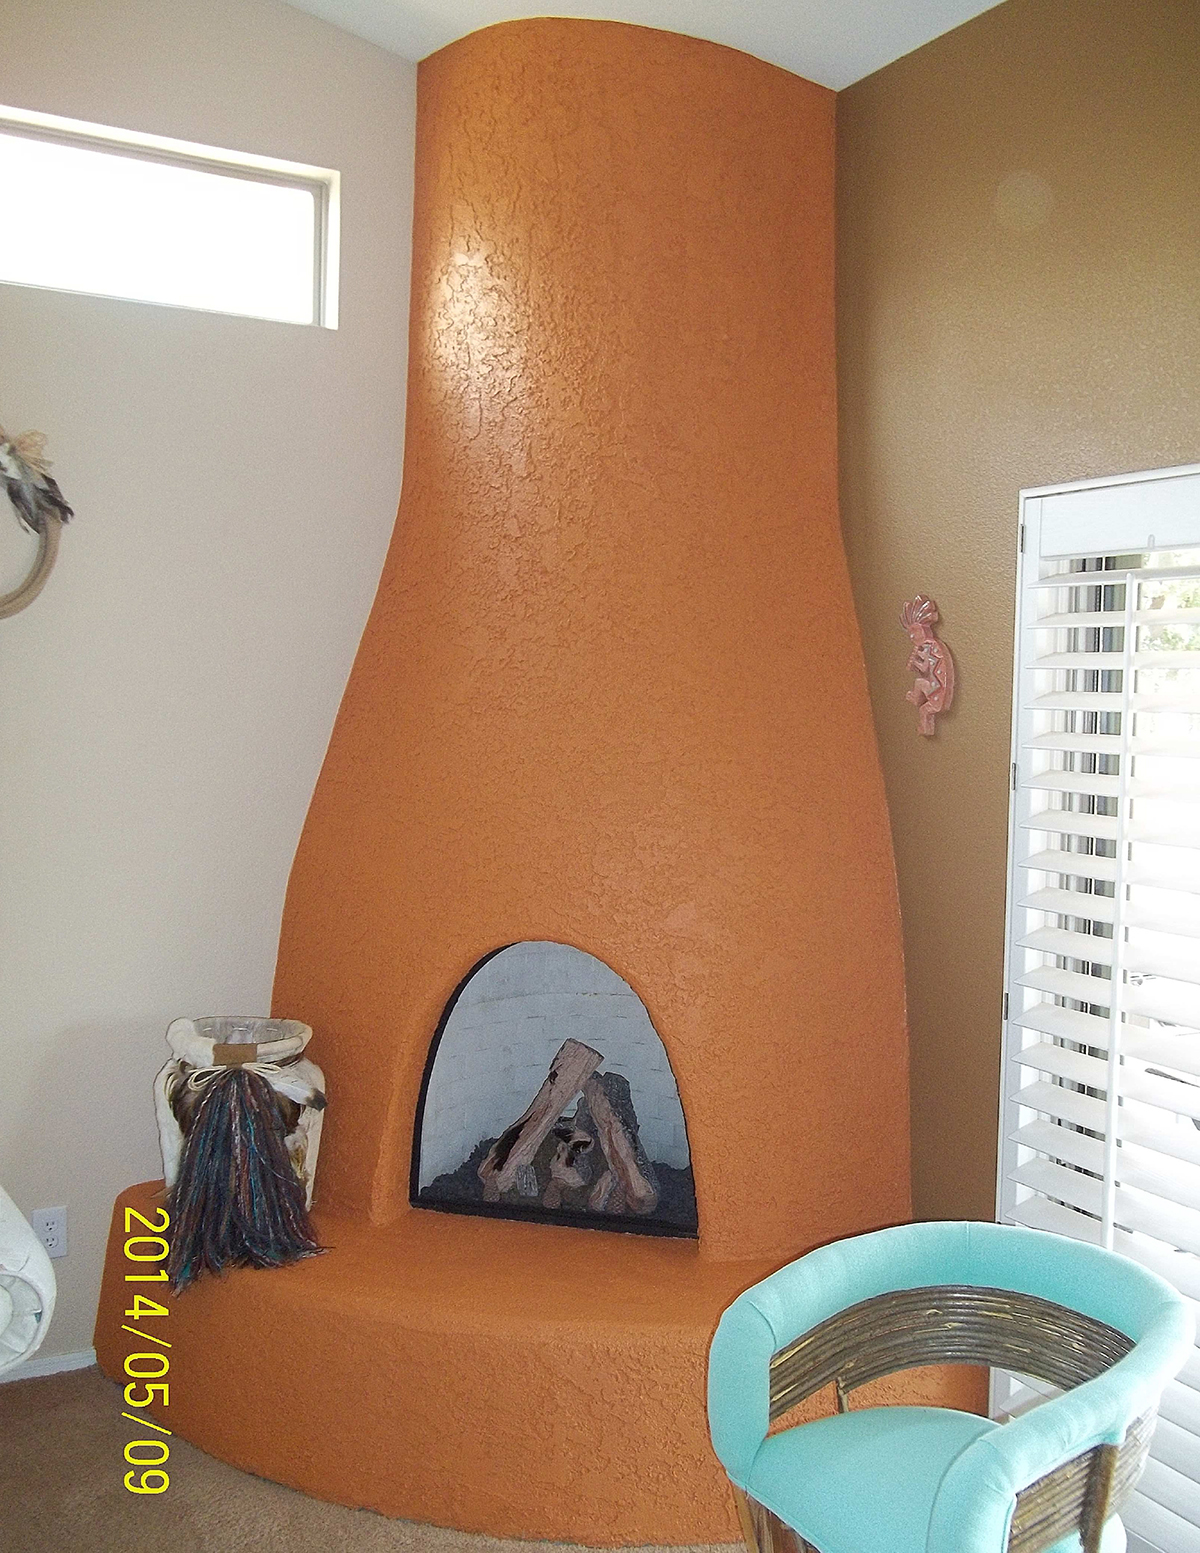 Project gallery - Tucson BBQ & FireplaceTucson BBQ & Fireplace